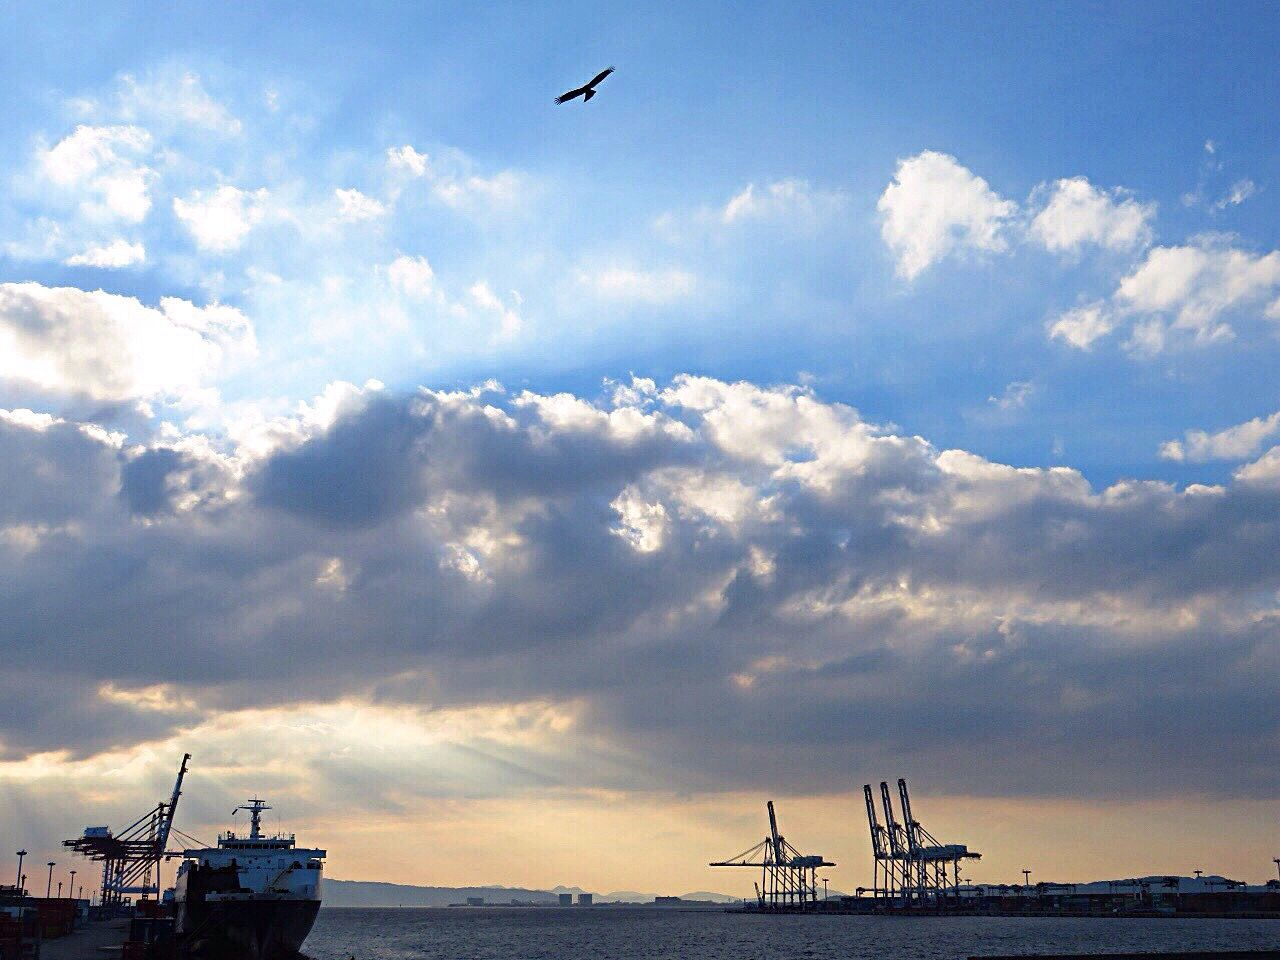 sky, cloud - sky, sea, nautical vessel, transportation, mode of transport, water, outdoors, nature, scenics, beauty in nature, day, no people, flying, horizon over water, harbor, bird, animal themes